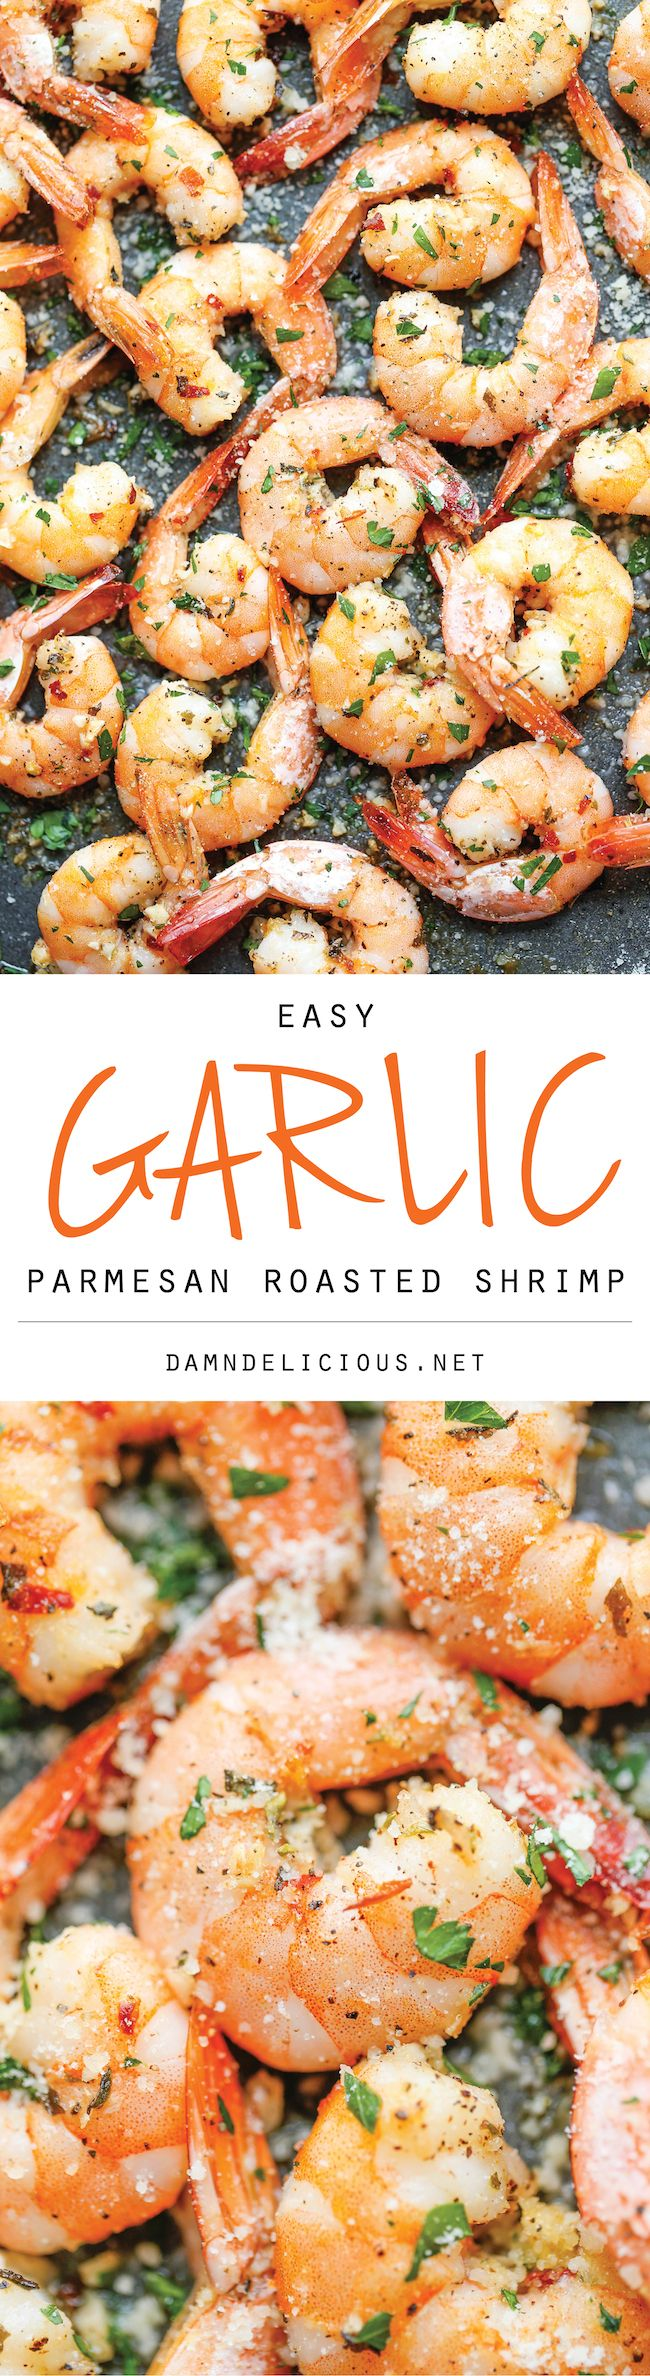 Garlic Parmesan Roasted Shrimp - The easiest roasted shrimp cocktail ever made with just 5 min prep. Yes, it's just that easy! (easy cocktails low calorie)